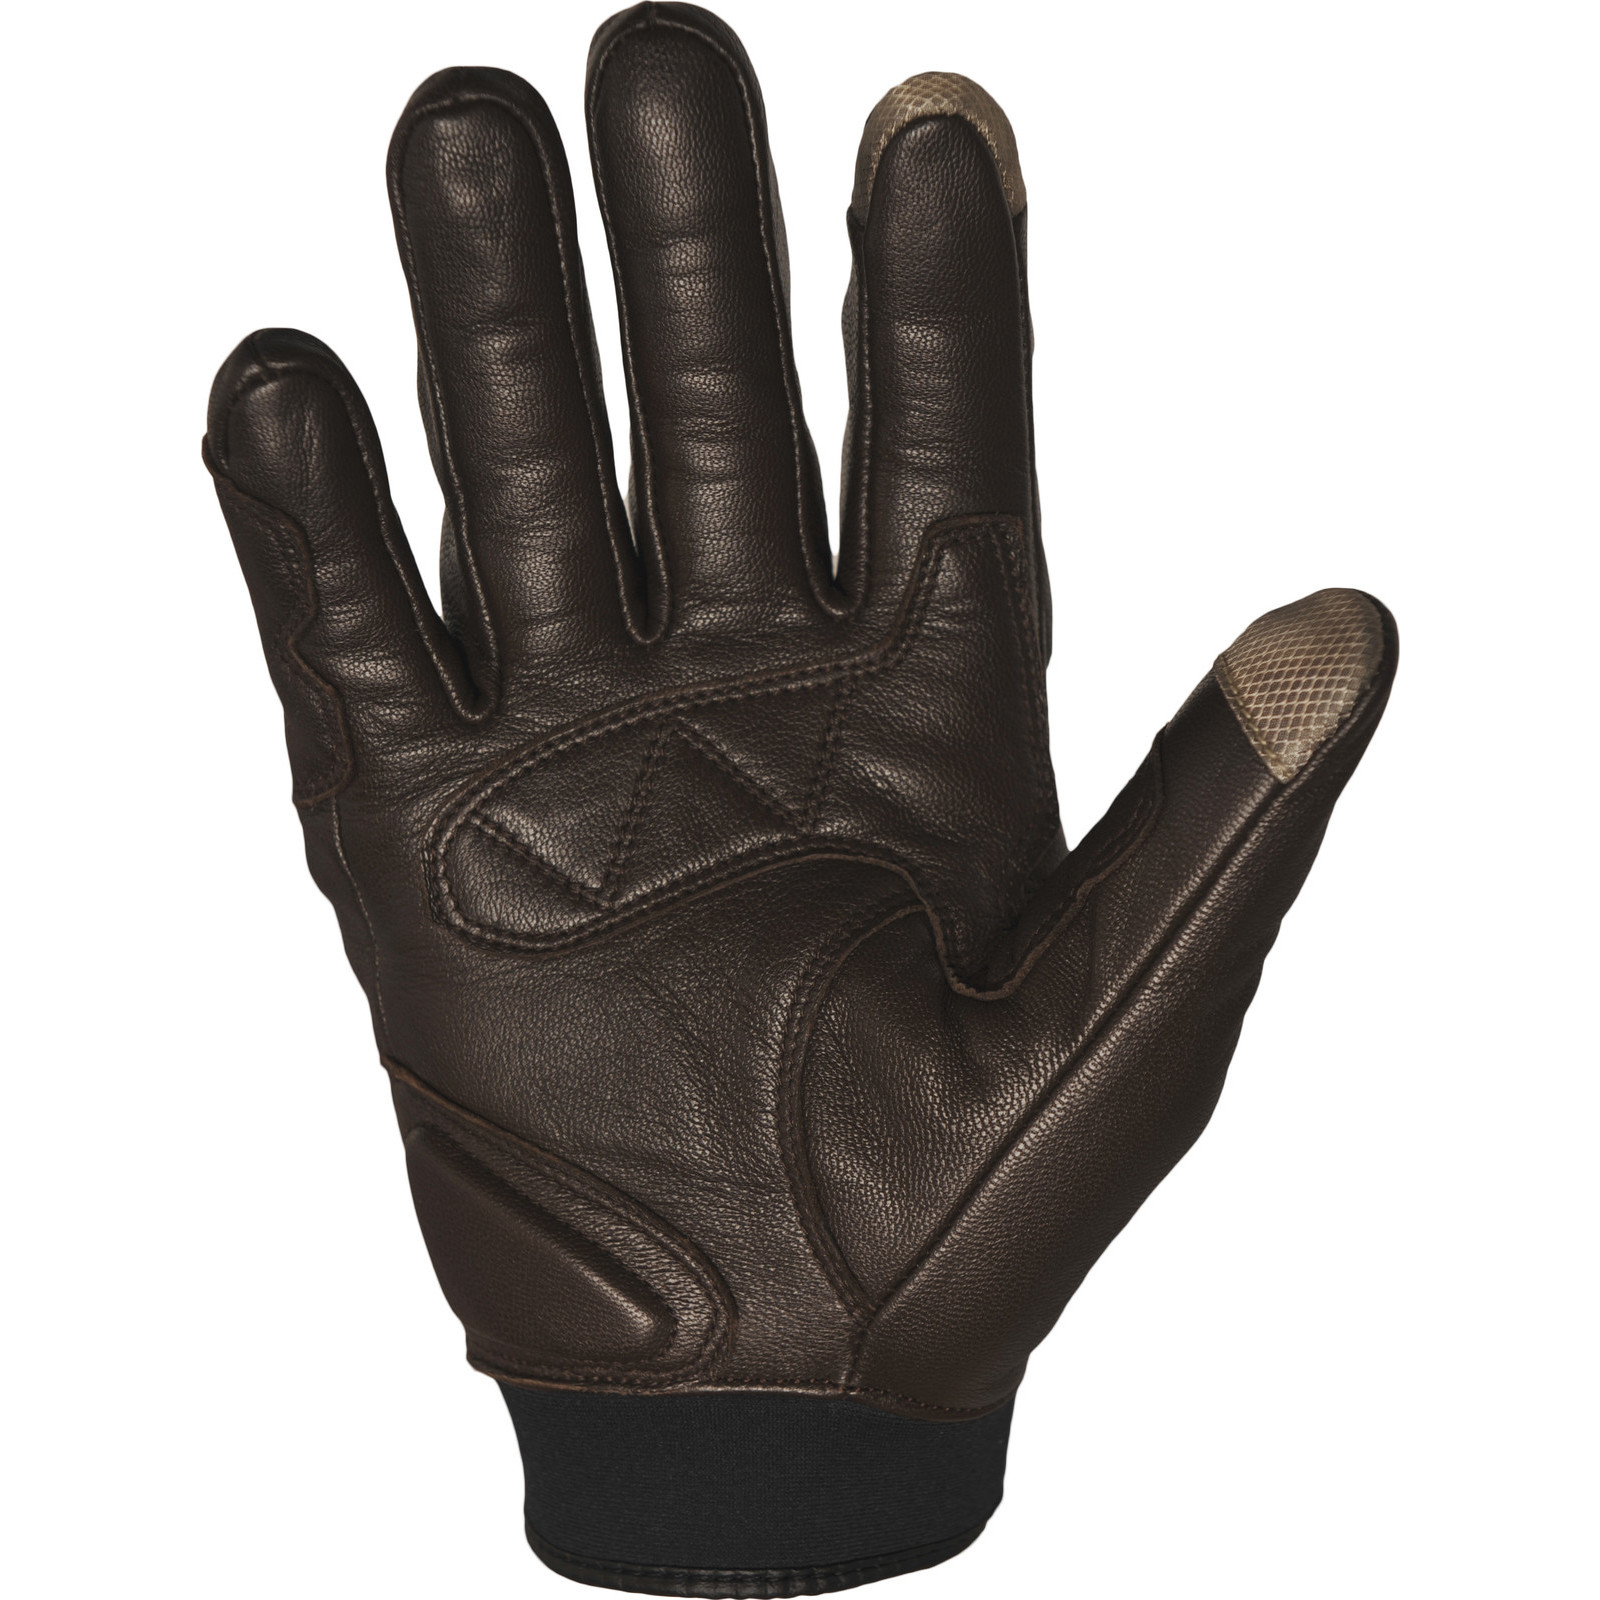 Motorcycle gloves large - Richa Cordoba Motorcycle Gloves Leather Textile Vintage Ce